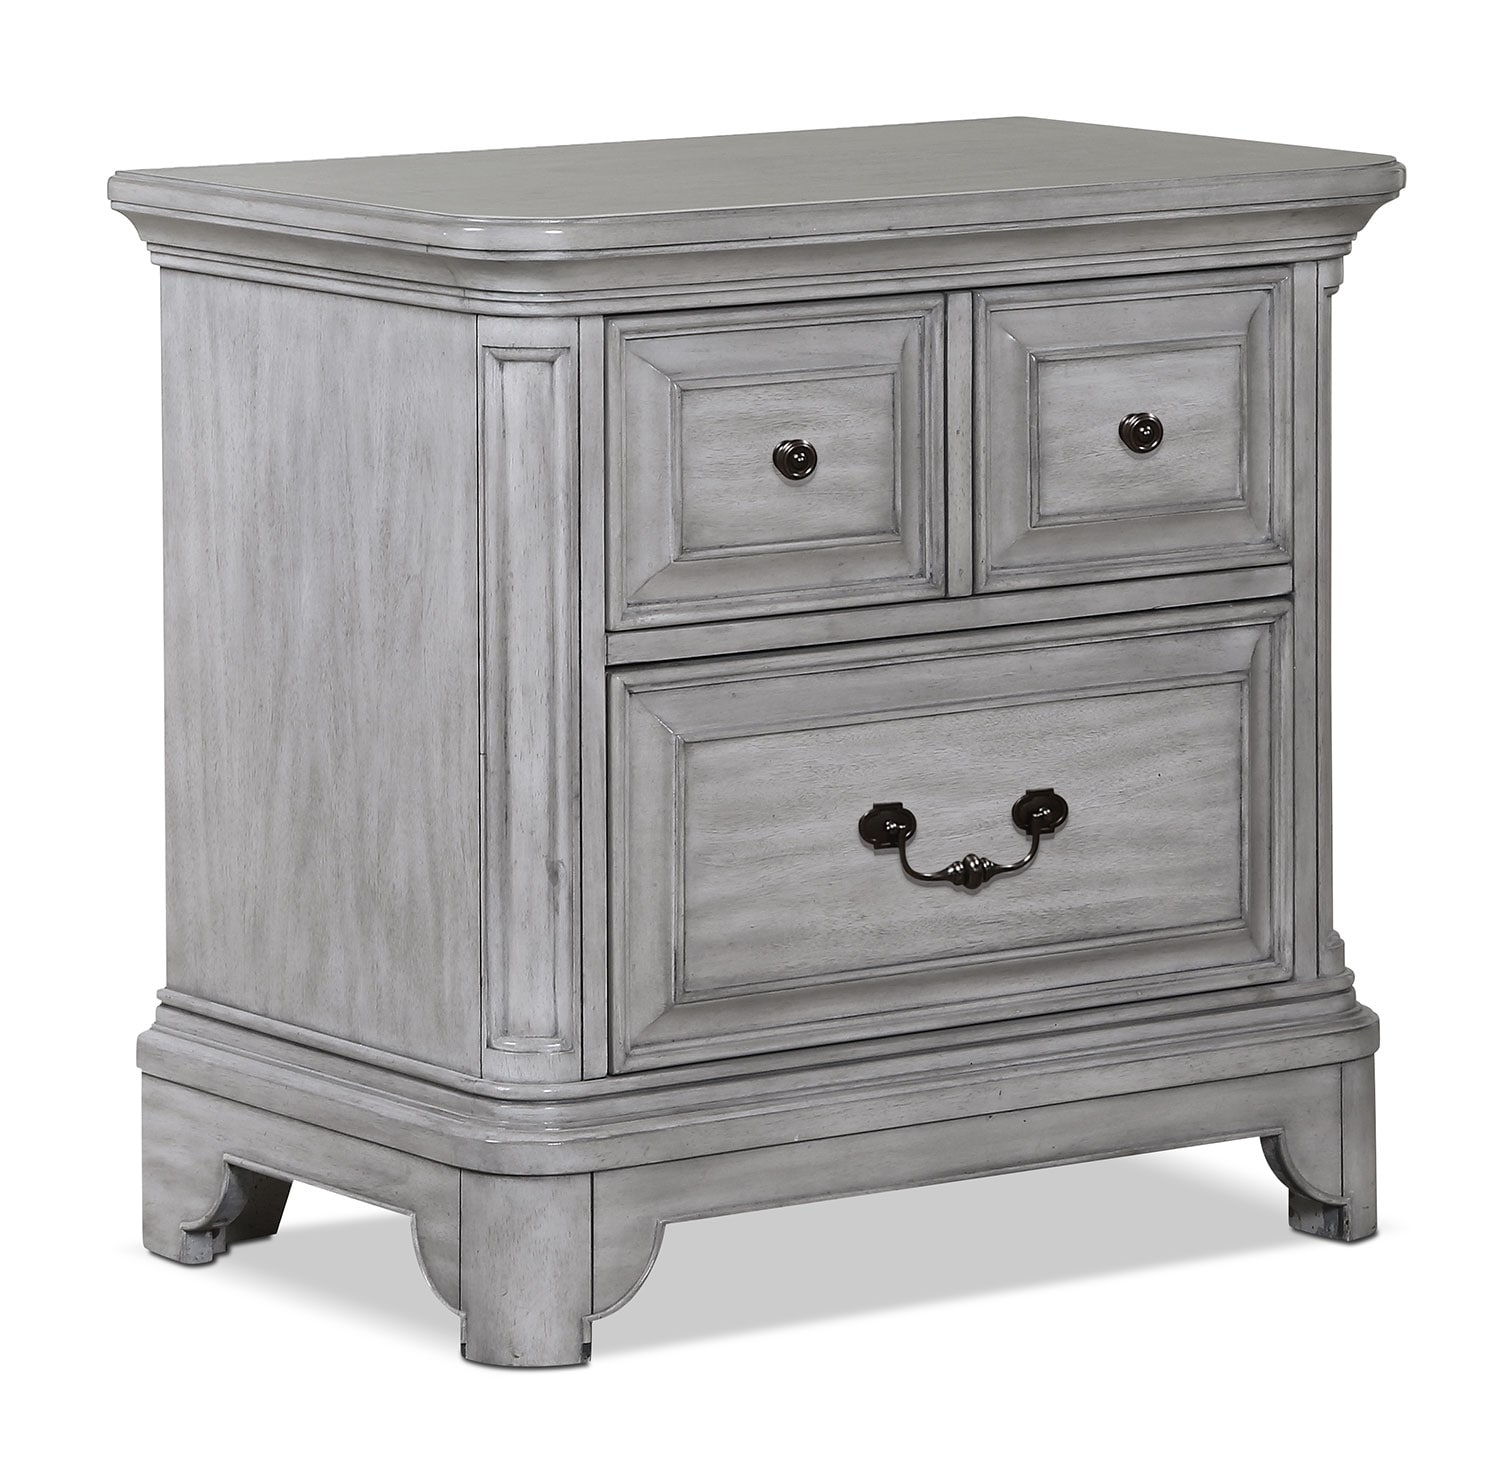 Tressa Night Table - Weathered Grey